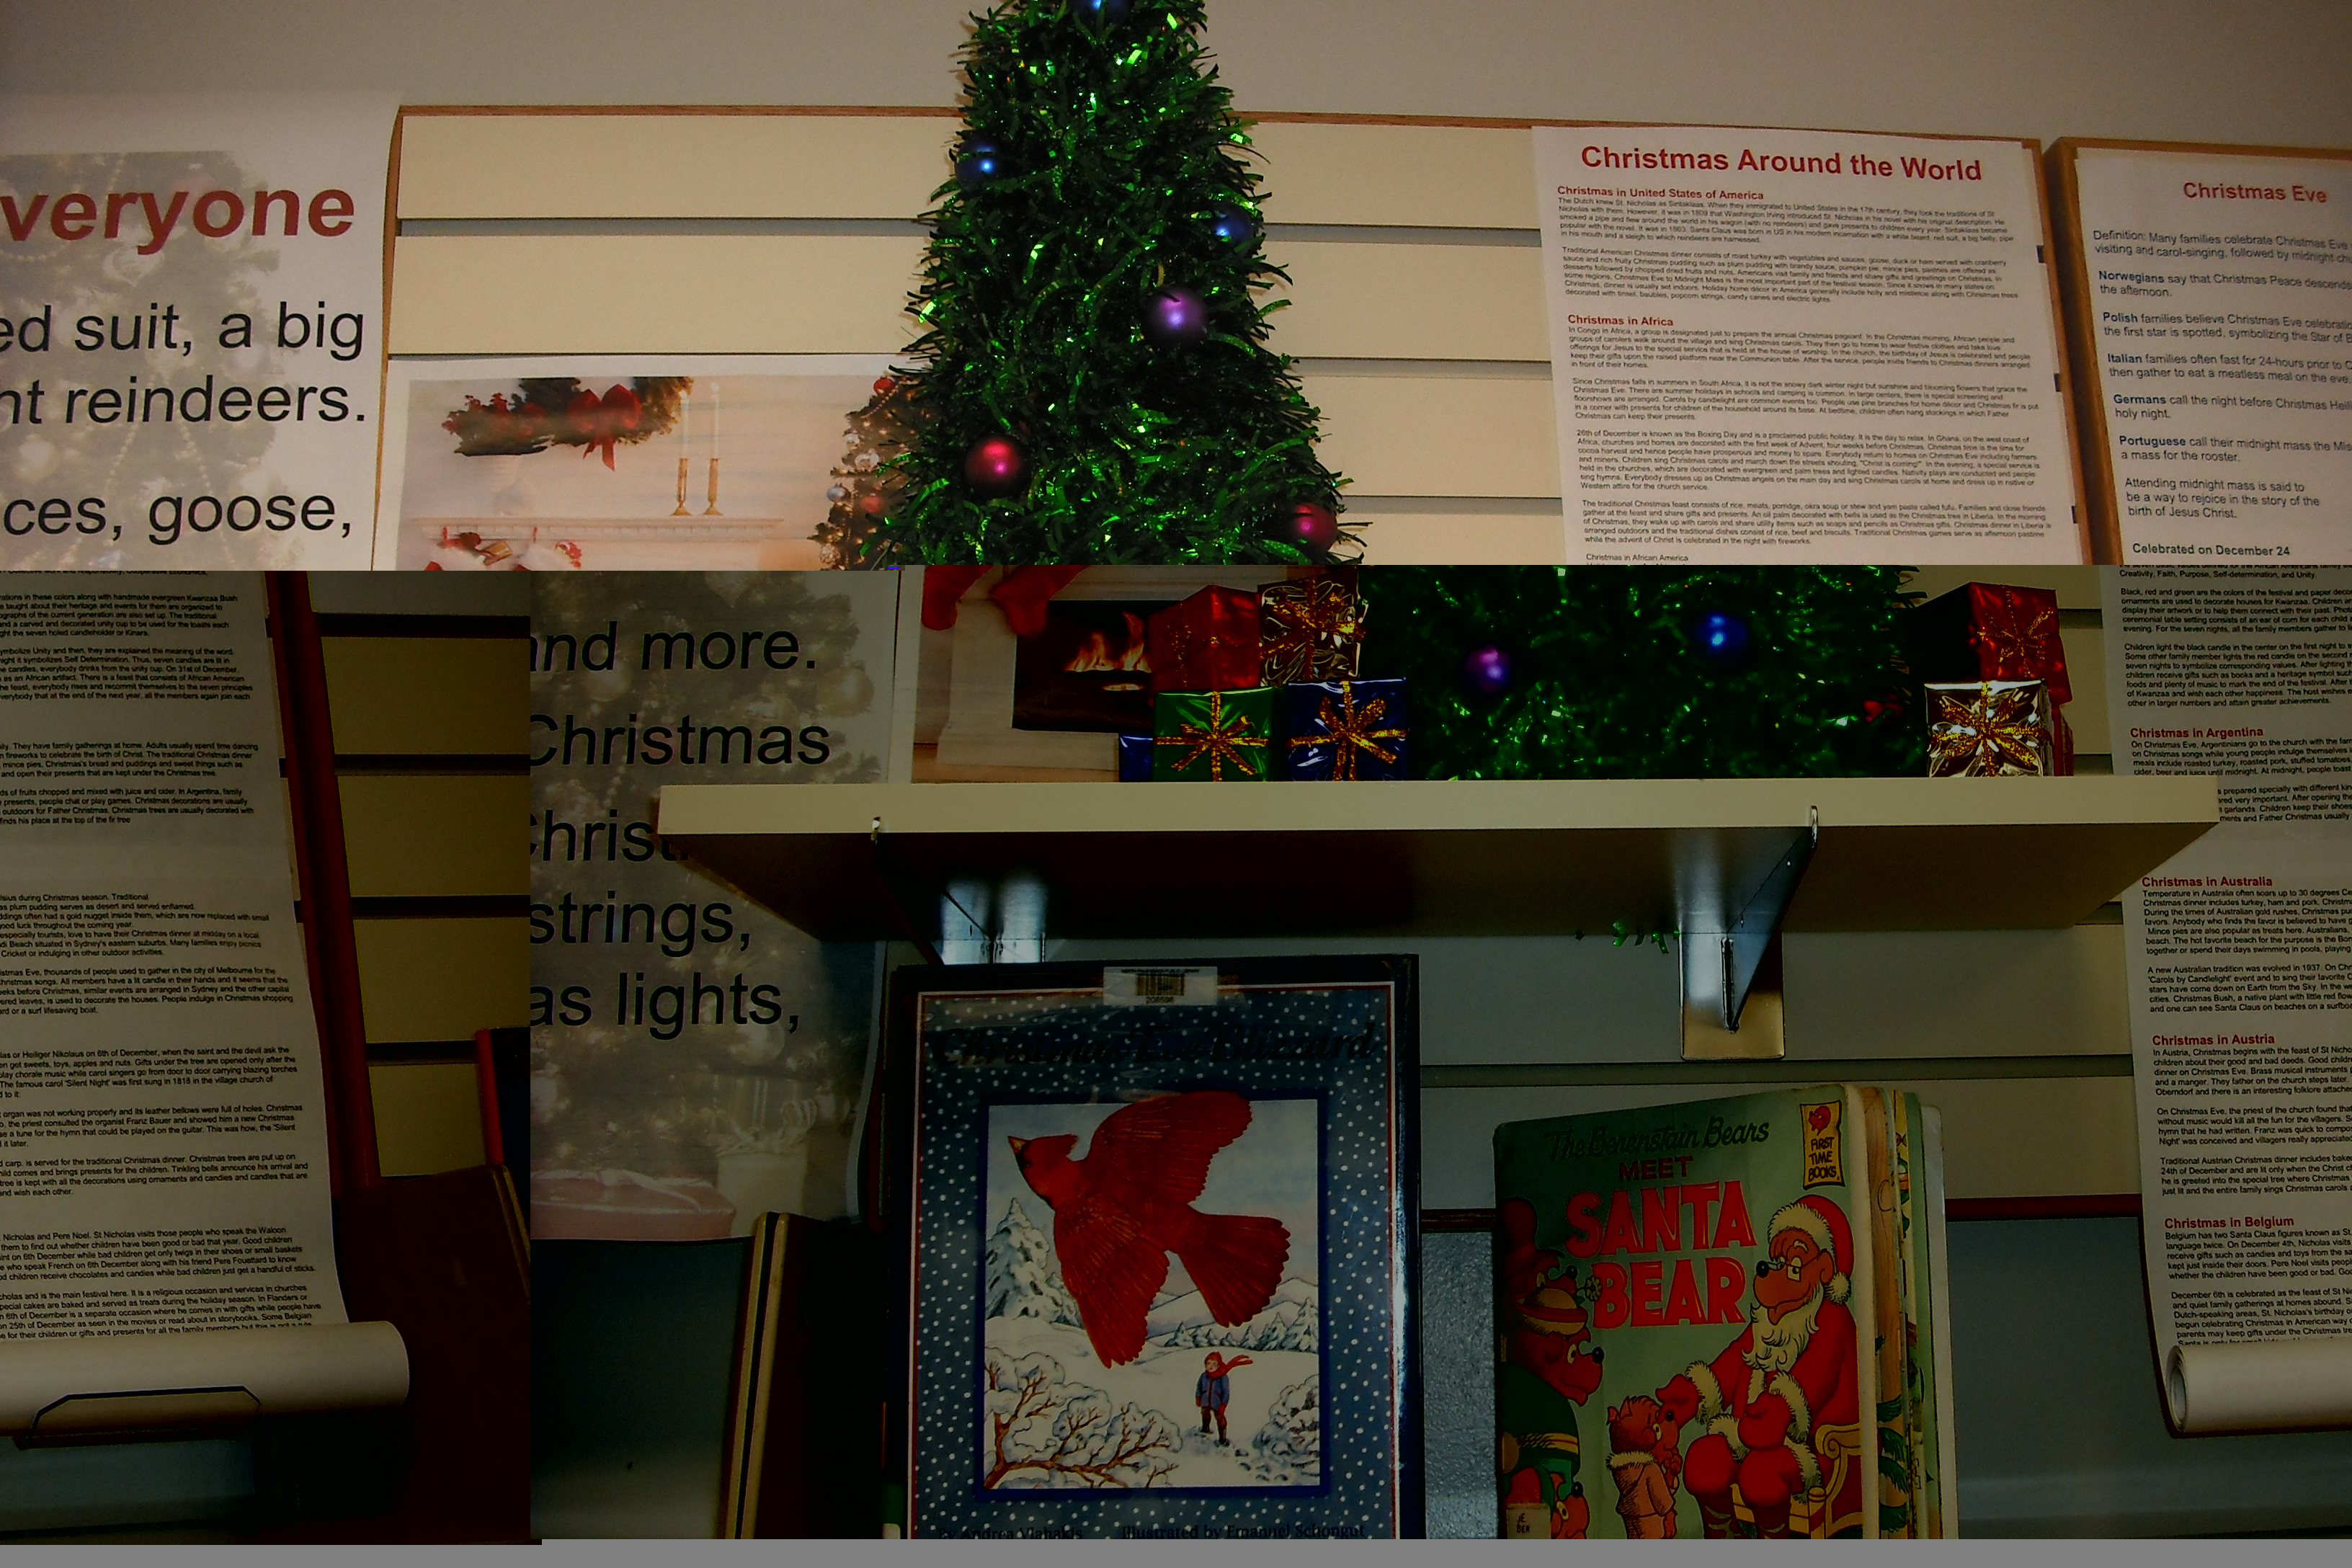 A small Christmas Tree sits on a shelf surrounded by Christmas information and books